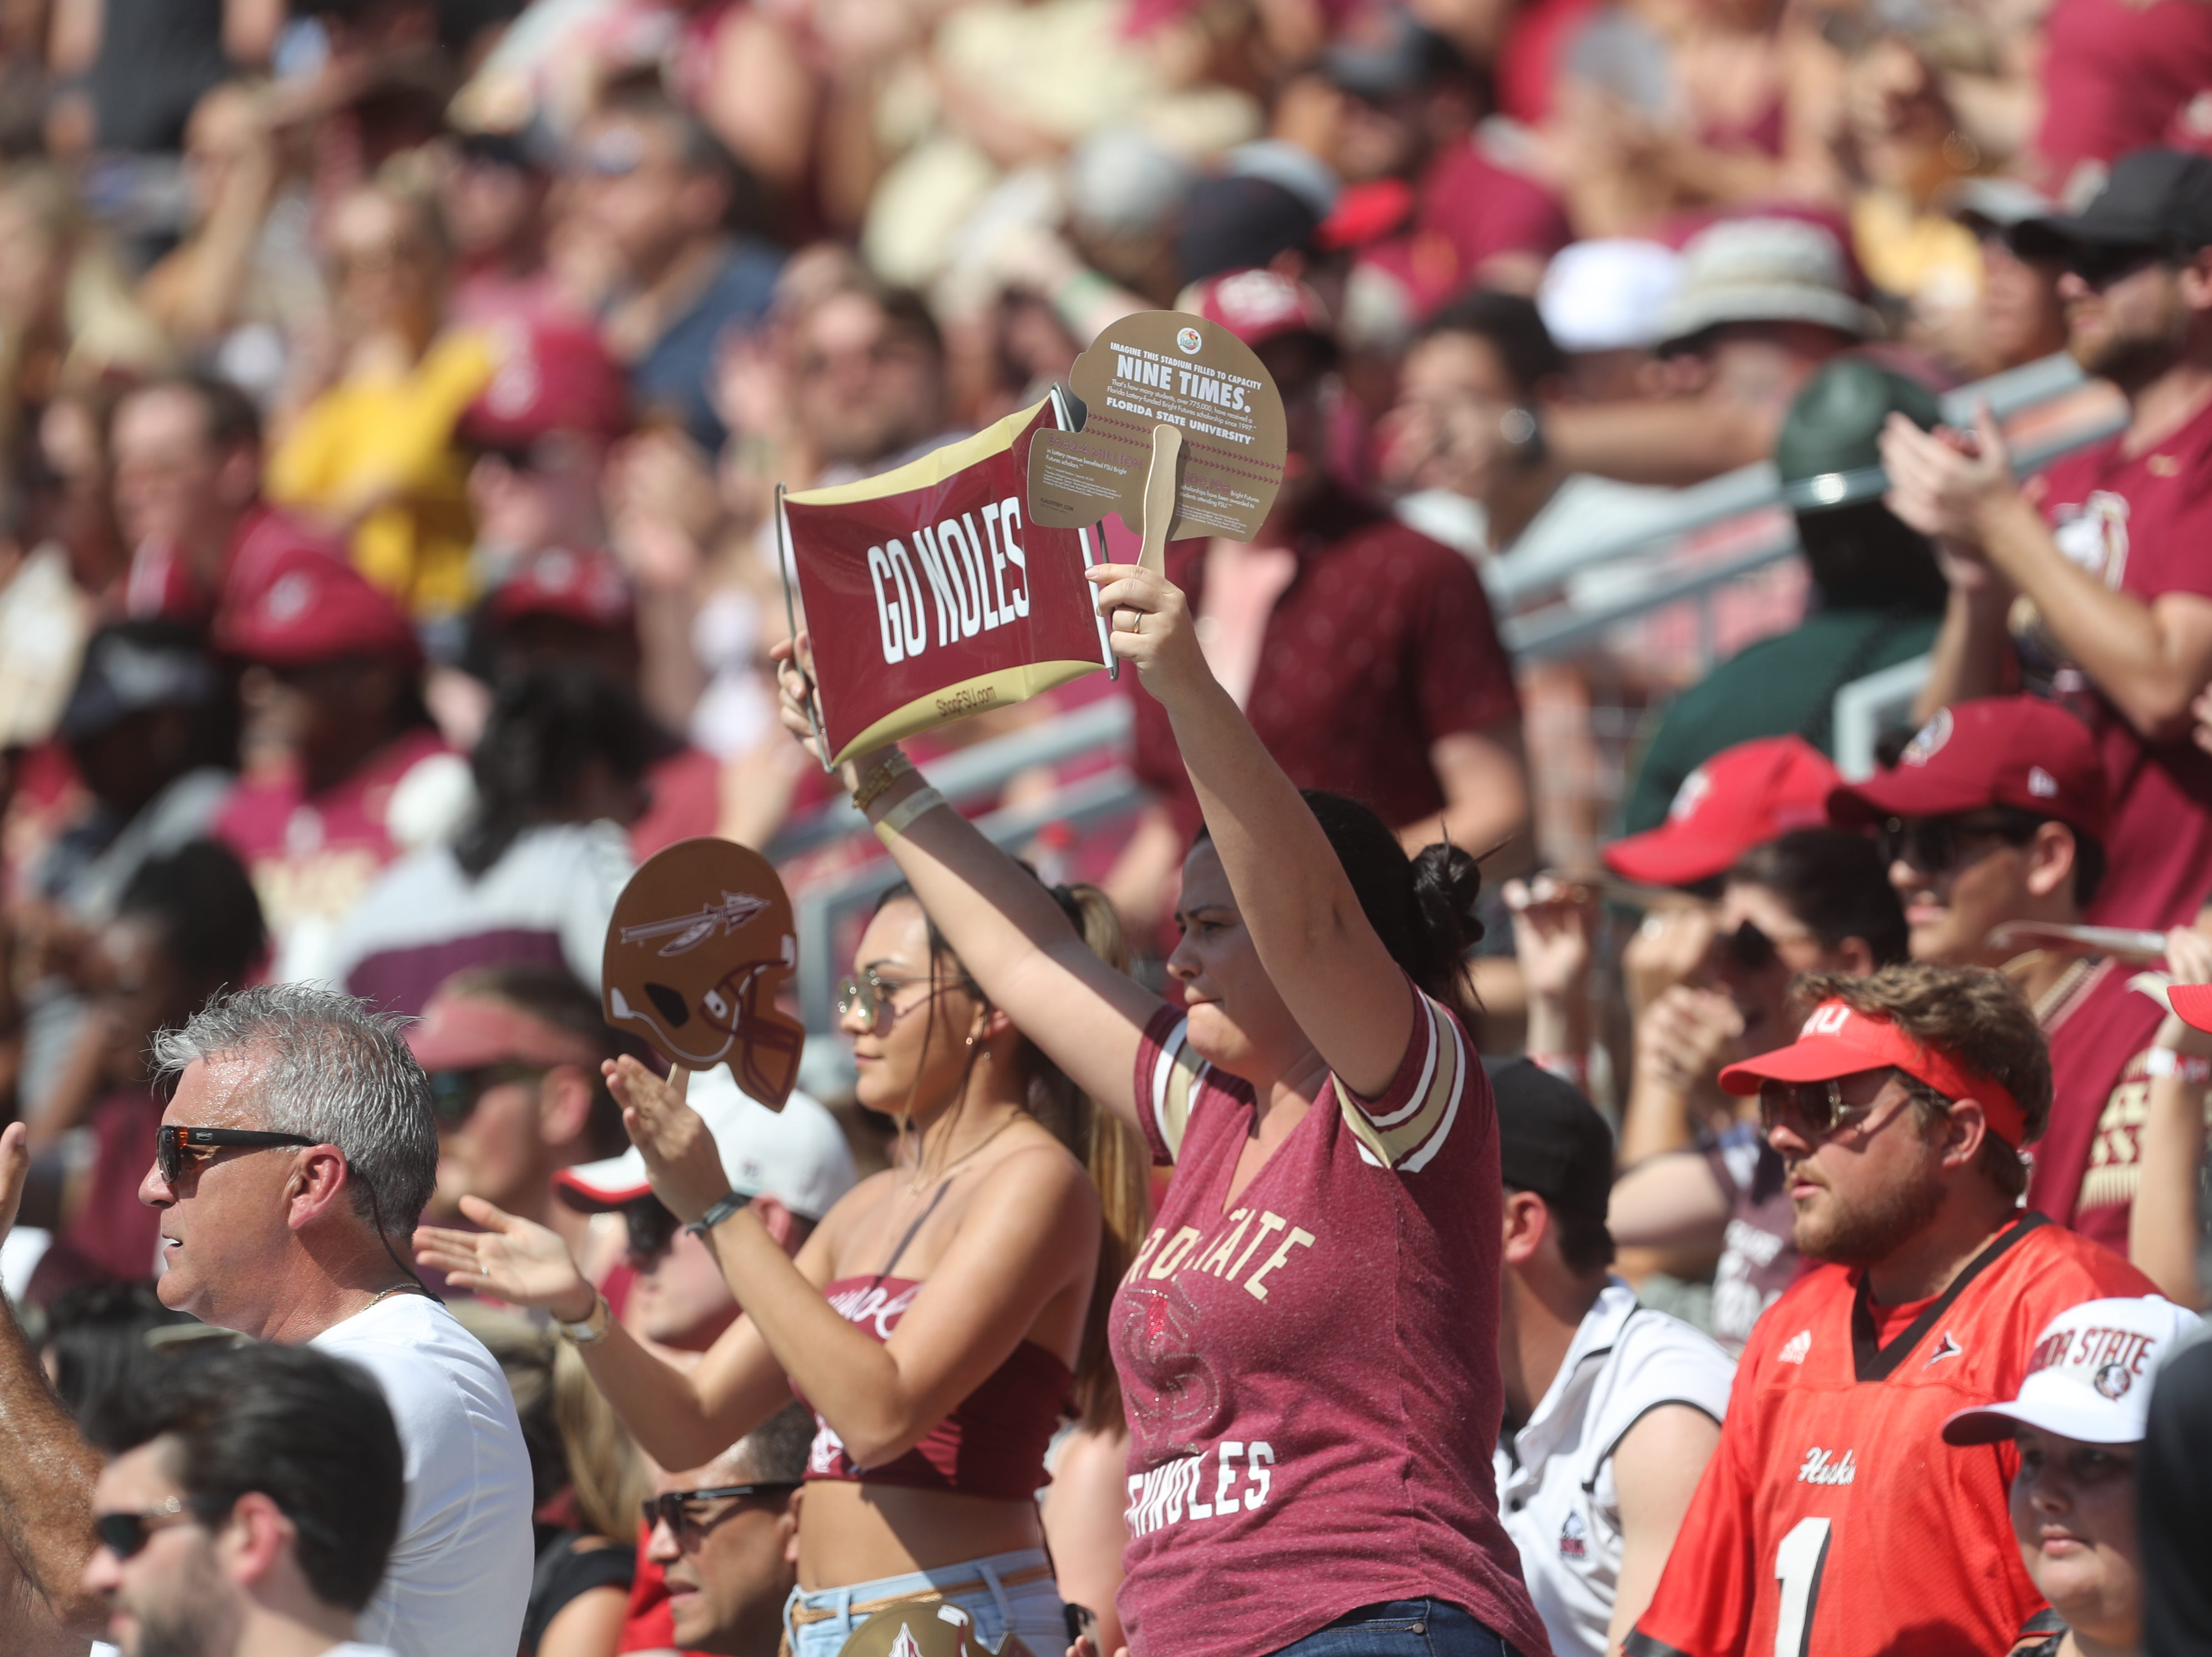 Fans cheer during a game between the Florida State University Seminoles and the Northern Illinois University Huskies at Doak S. Campbell Stadium in Tallahassee, Fla. Saturday, September 22, 2018.